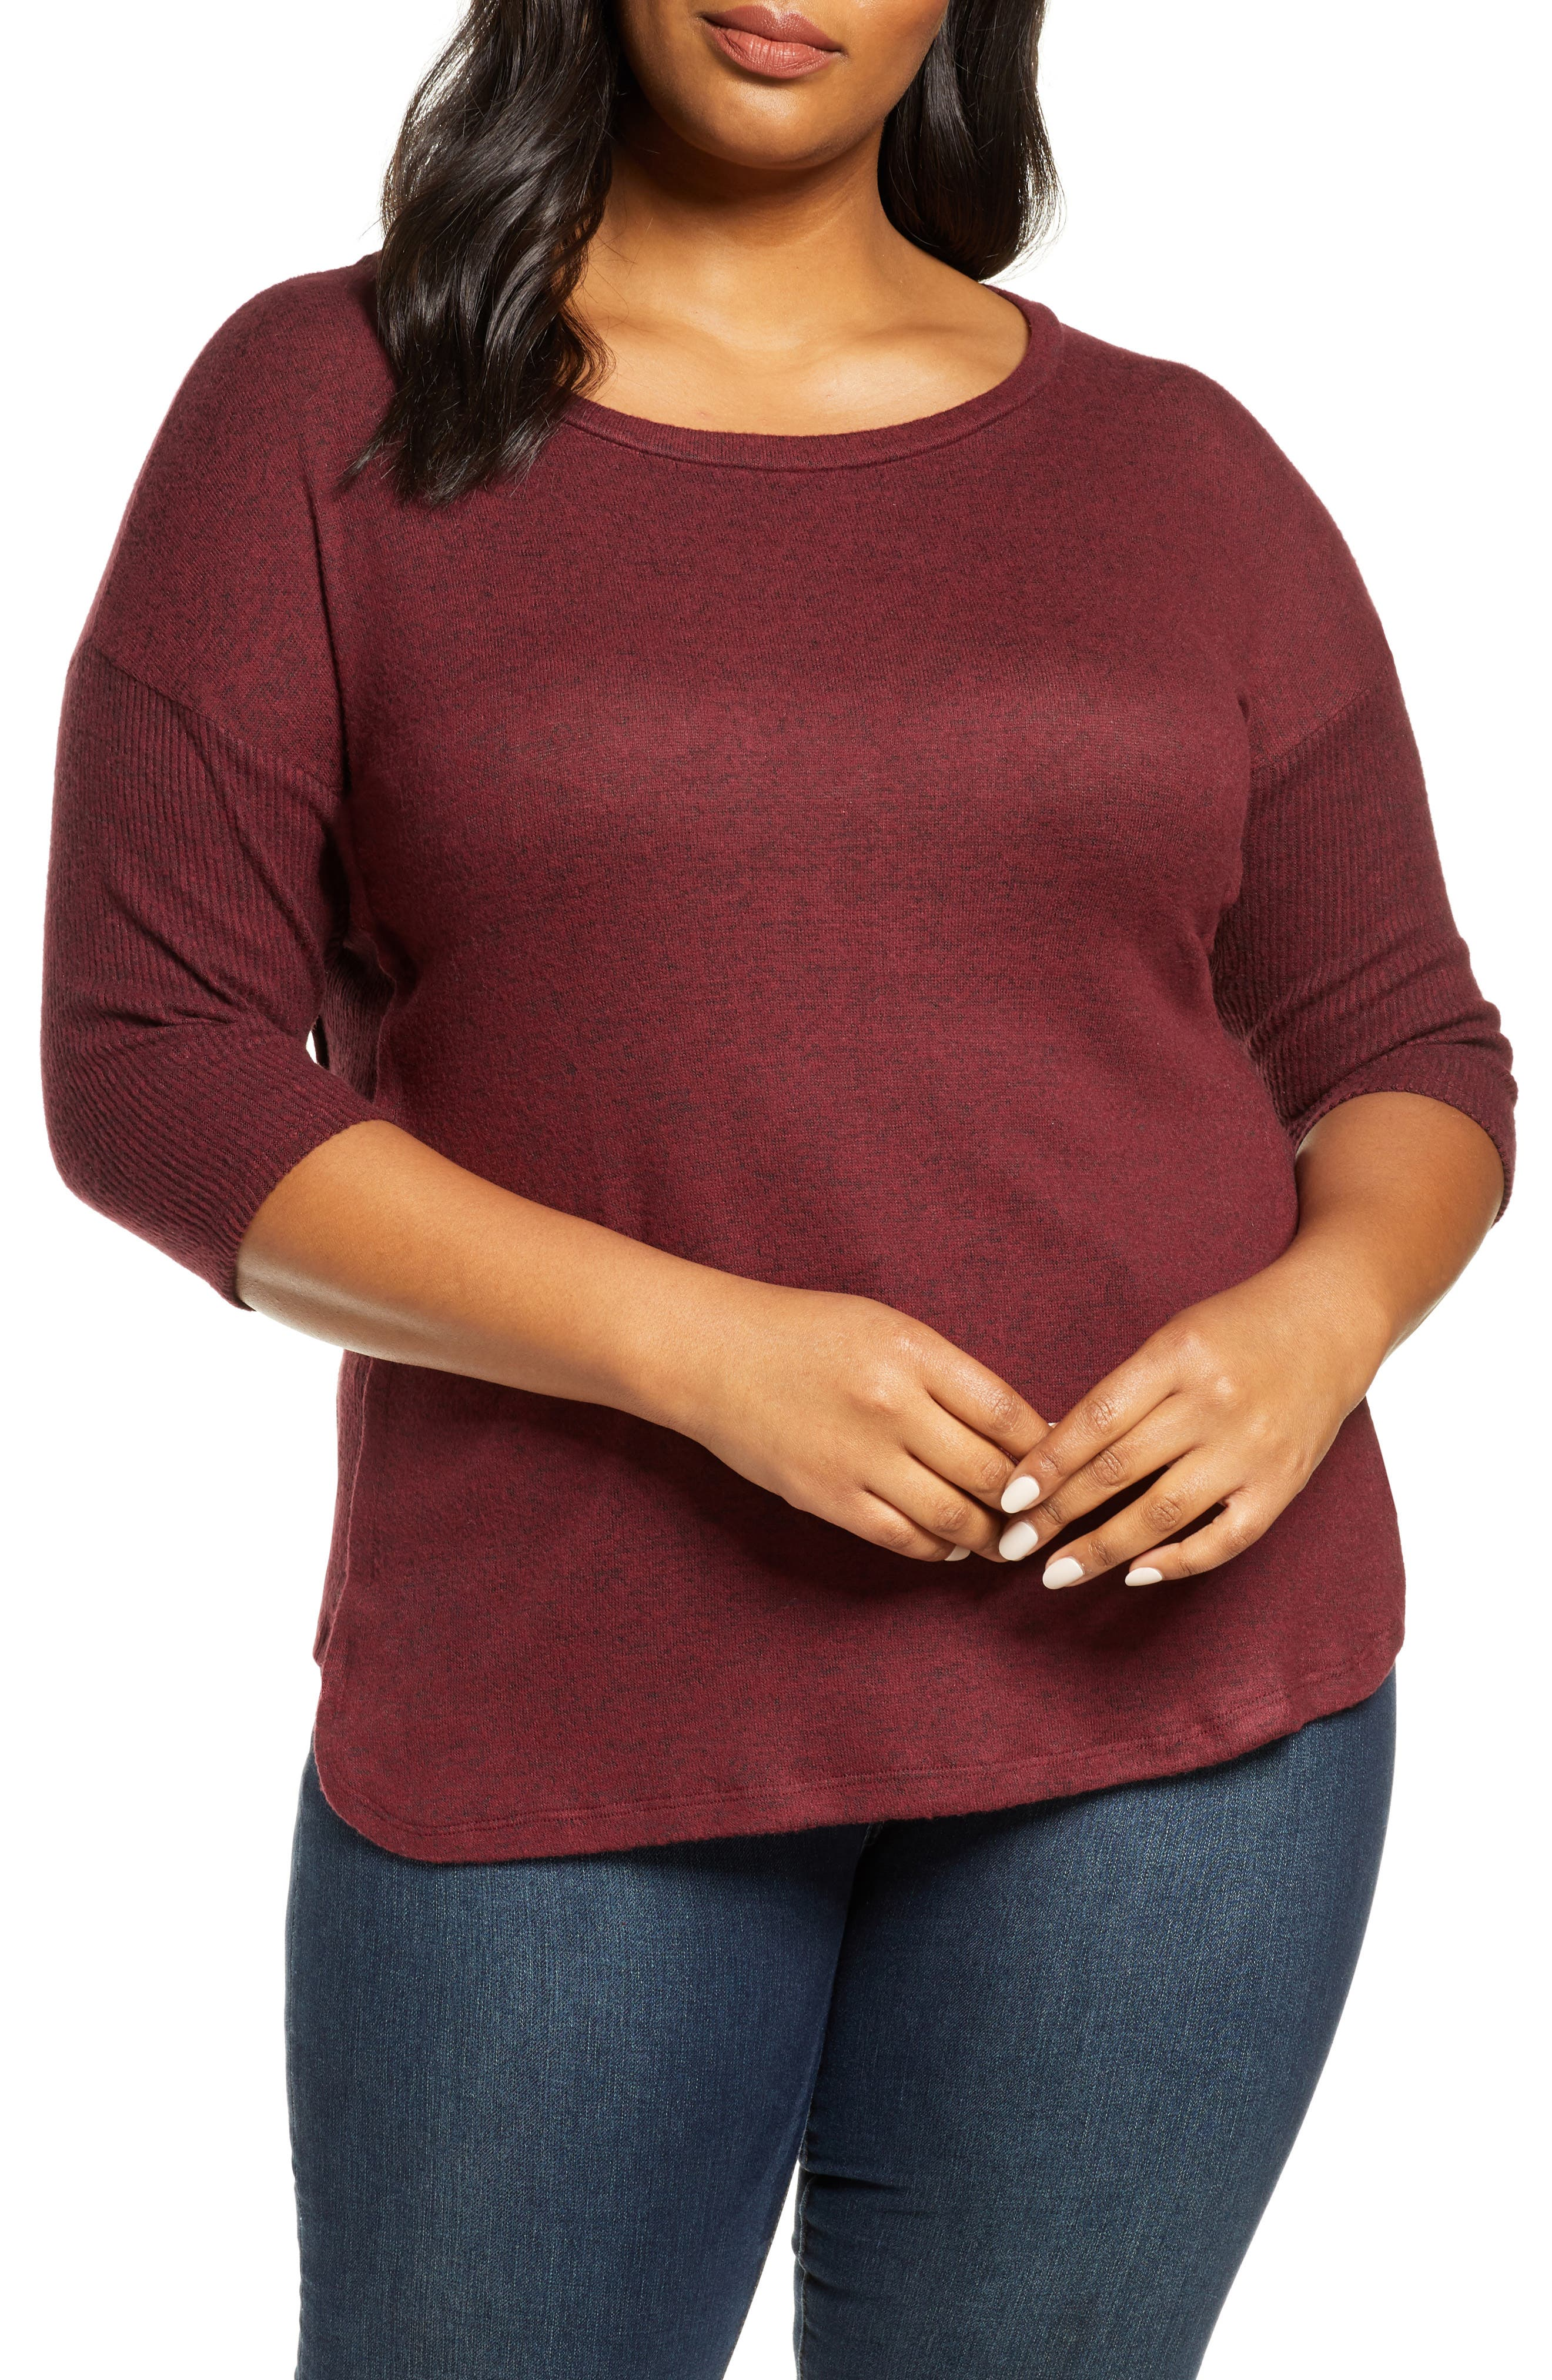 Ribbed sleeves and side panels softly structure this brushed, aptly named top that\\\'s exactly what your weekend needs. Style Name: Bobeau Renee Cozy Rib Contrast Detail Top (Plus Size). Style Number: 5954502. Available in stores.